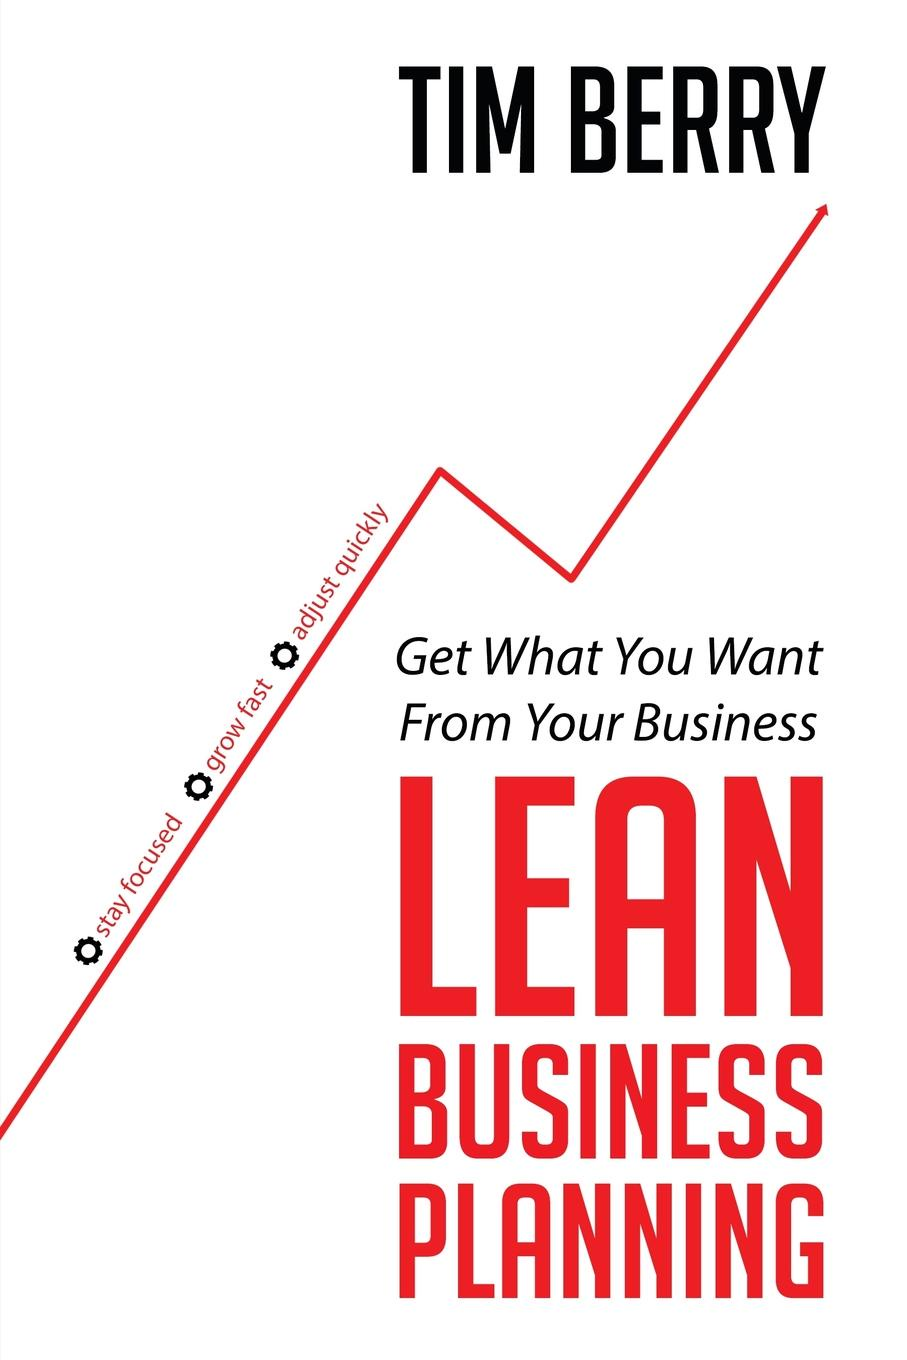 Tim Berry Lean Business Planning. Get What You Want From Your